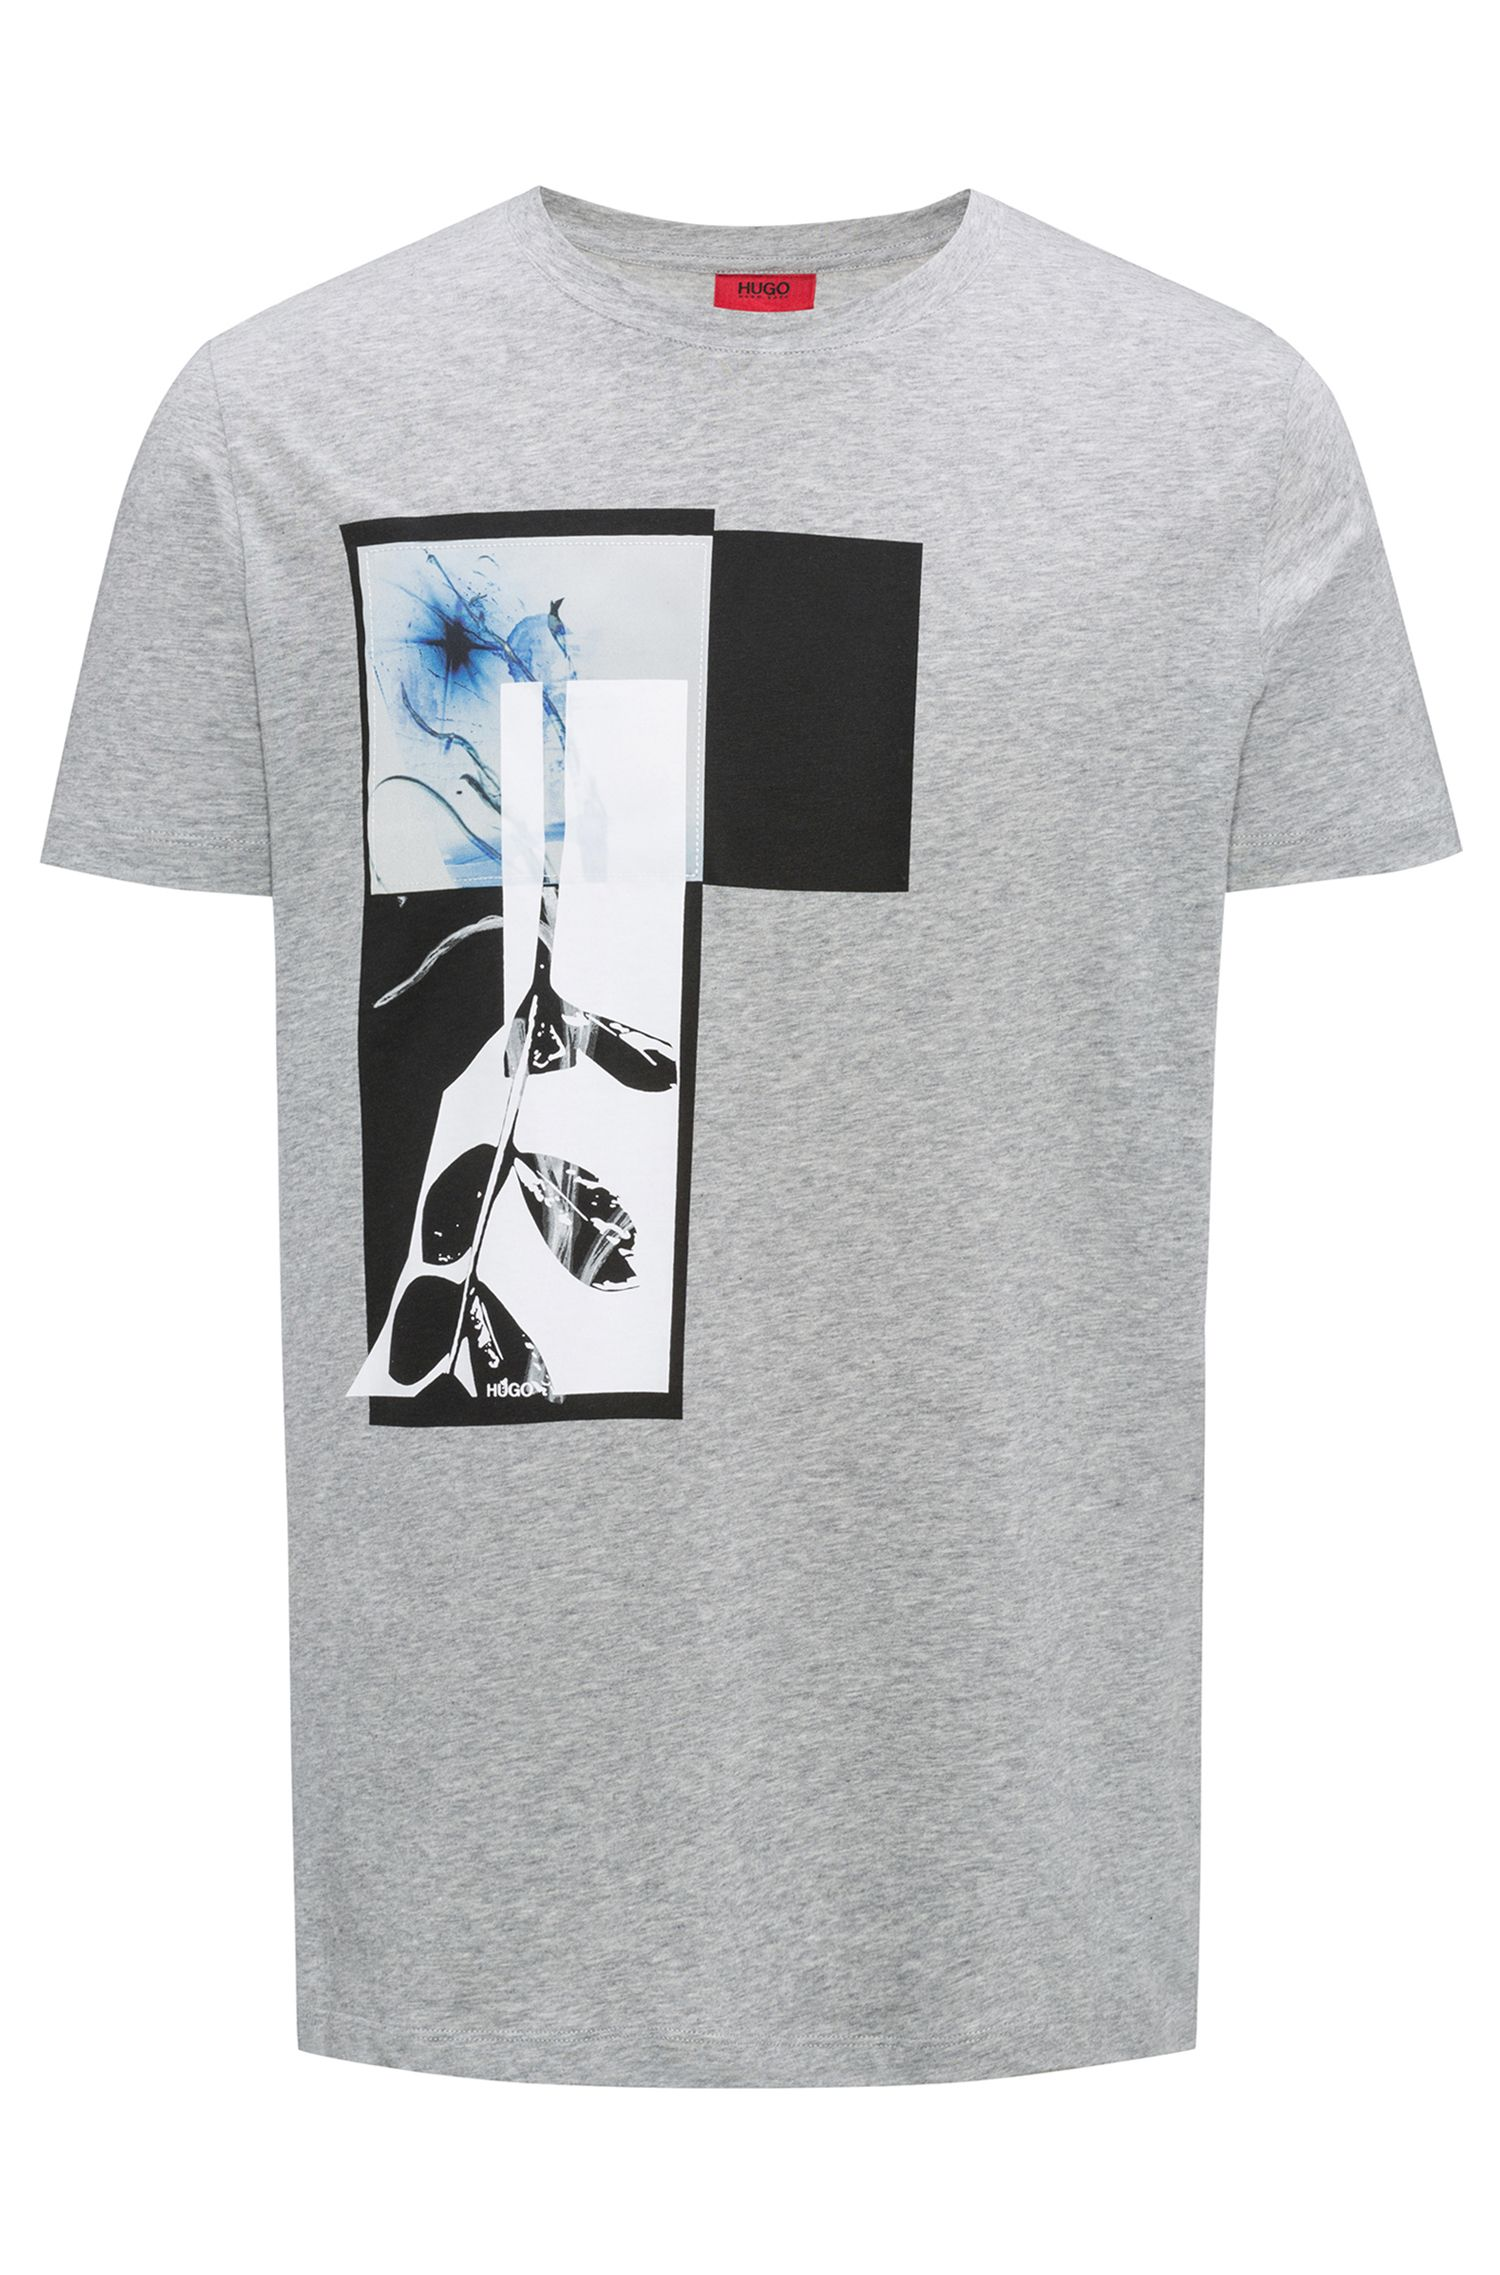 Relaxed-Fit T-Shirt aus Single Jersey mit abstraktem Print, Grau